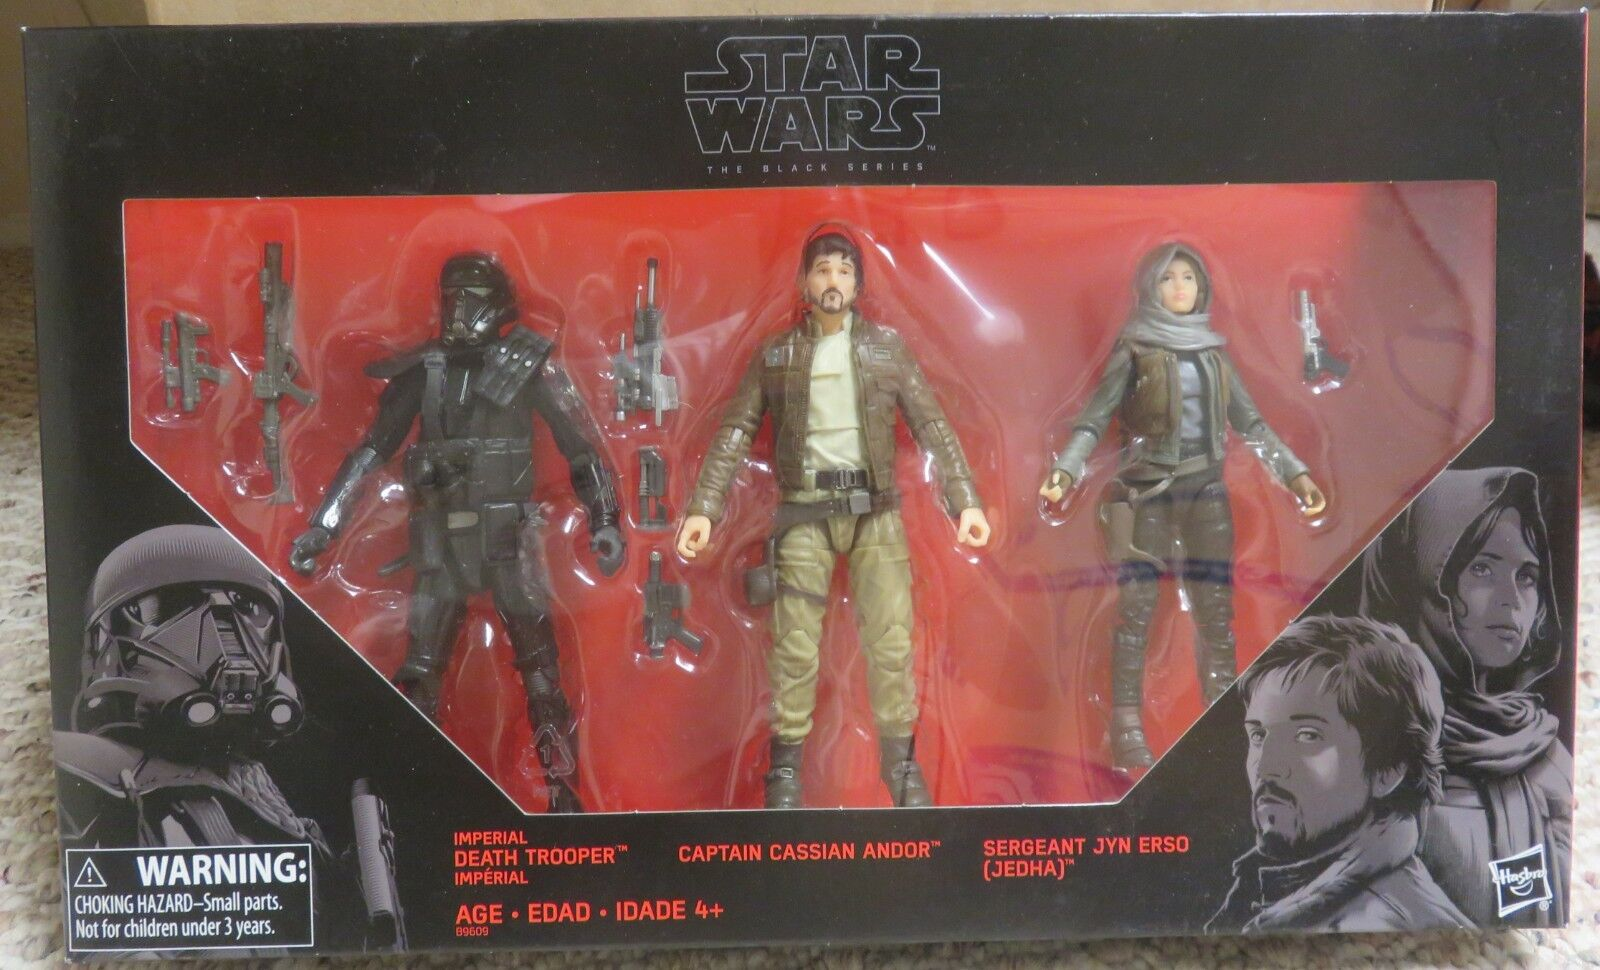 Star wars imperial tod soldat captain cassian andor sergeant jyn erso - neue